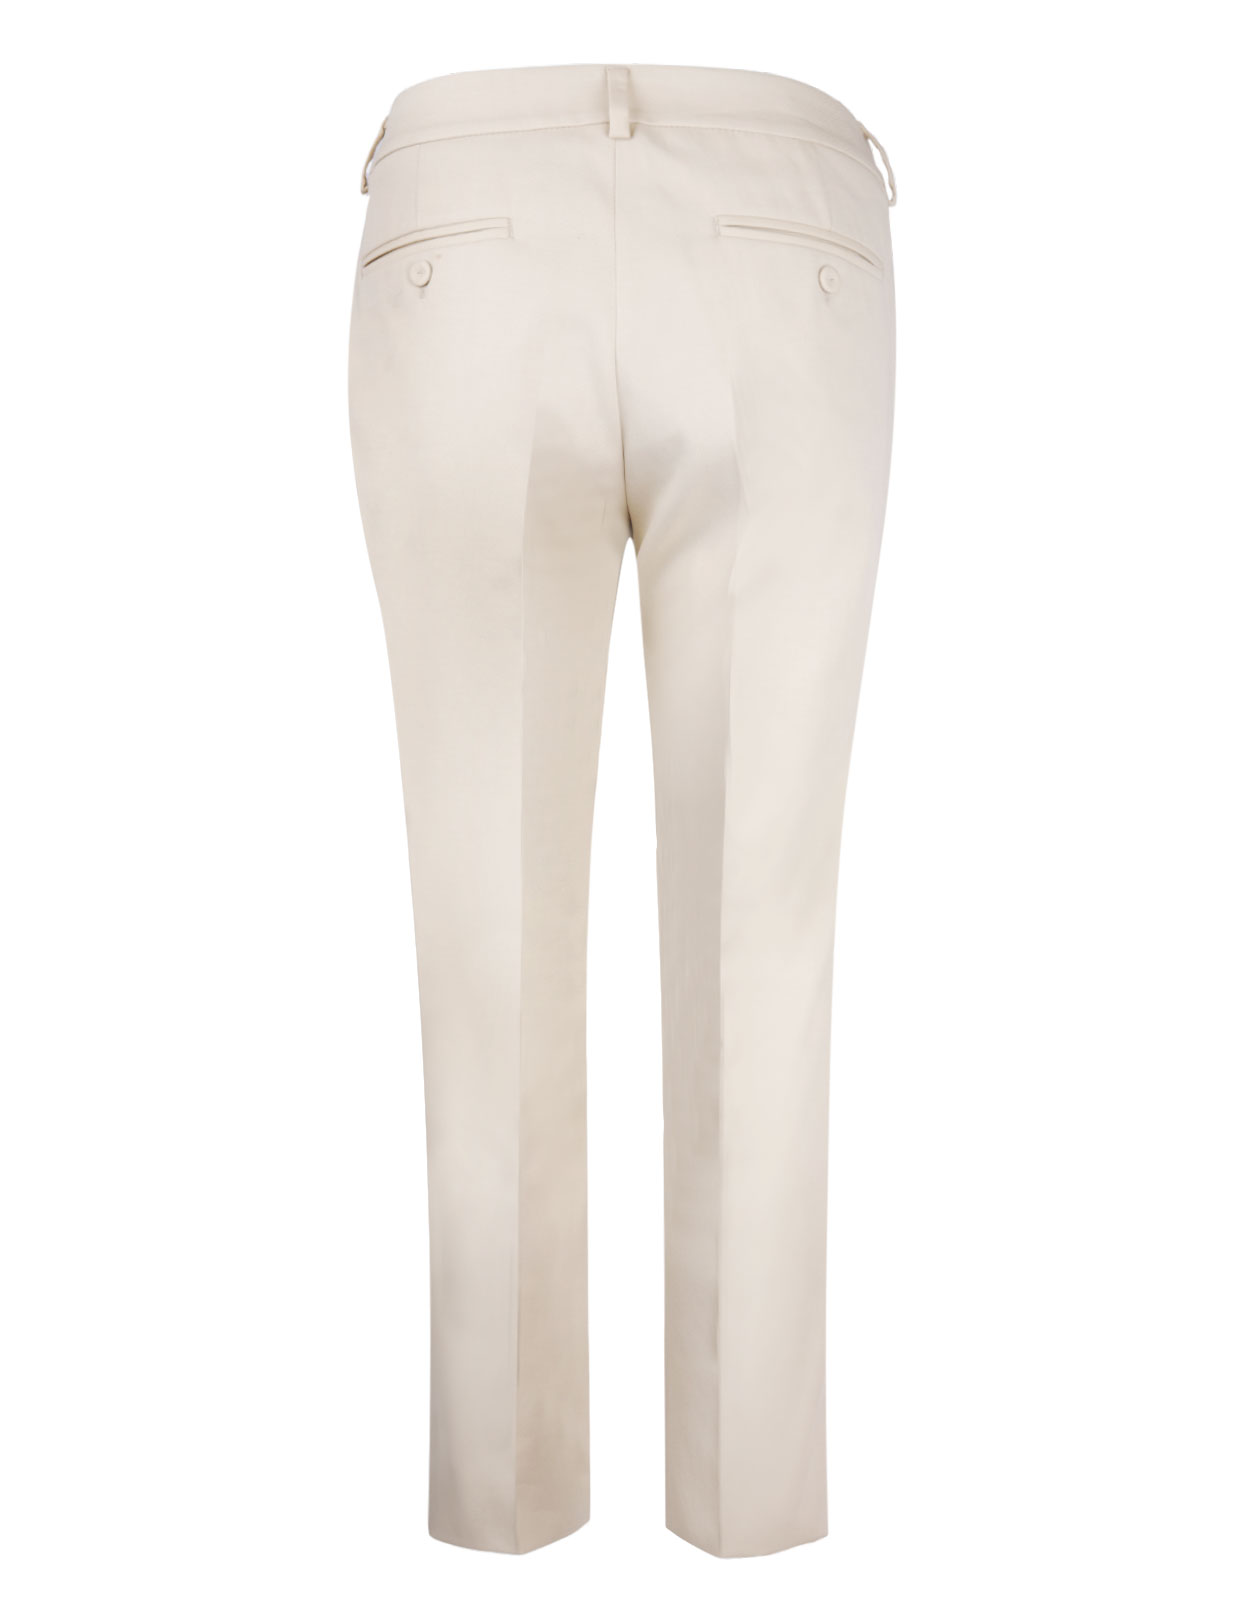 Cotton Trousers Vite Greggio